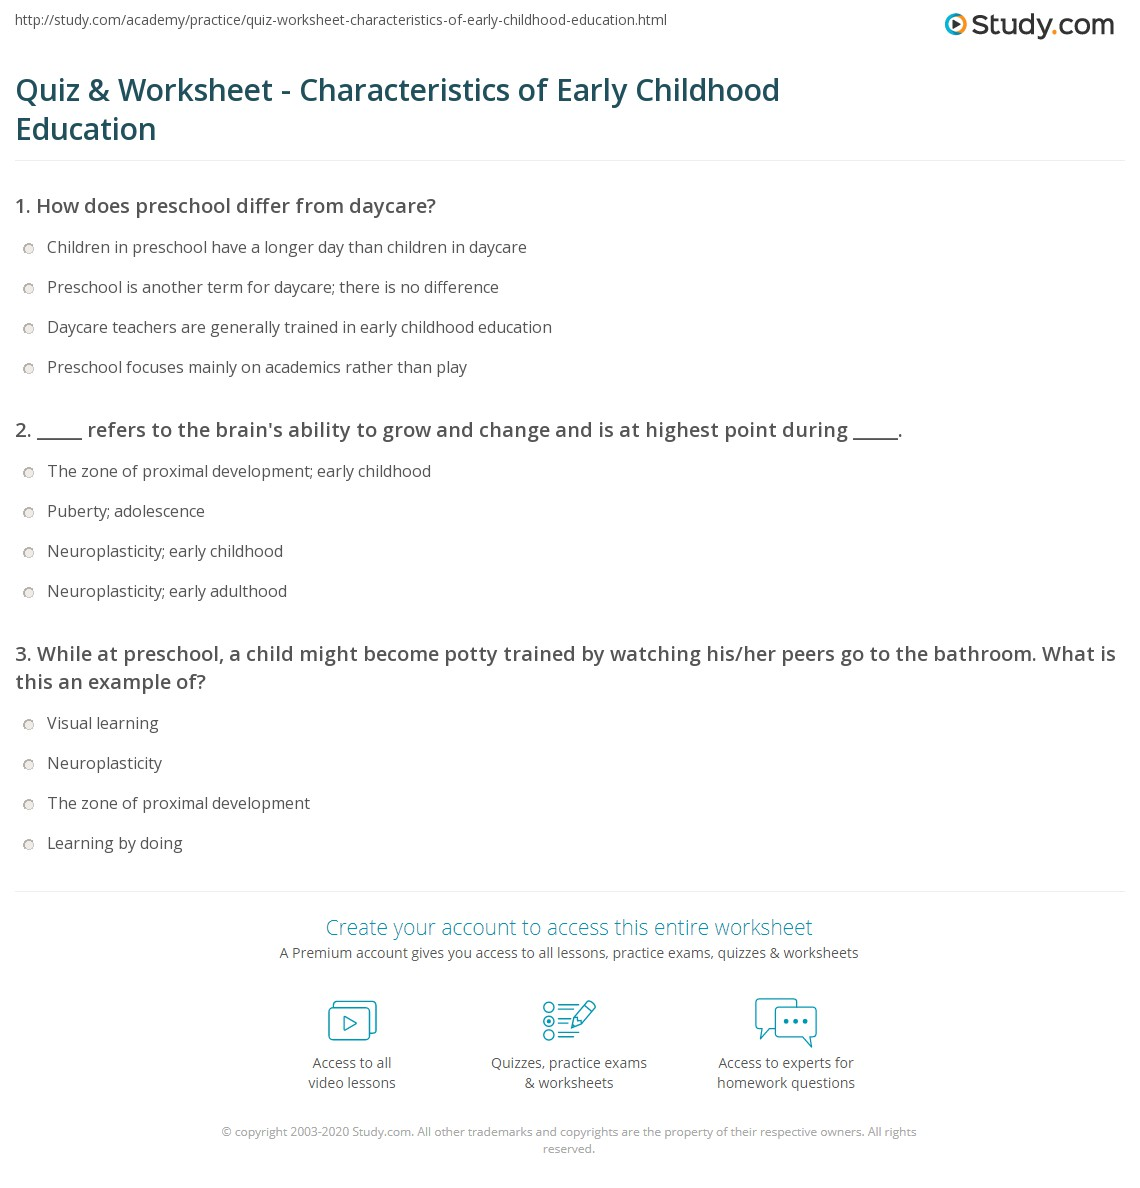 Quiz Worksheet Characteristics Of Early Childhood Education